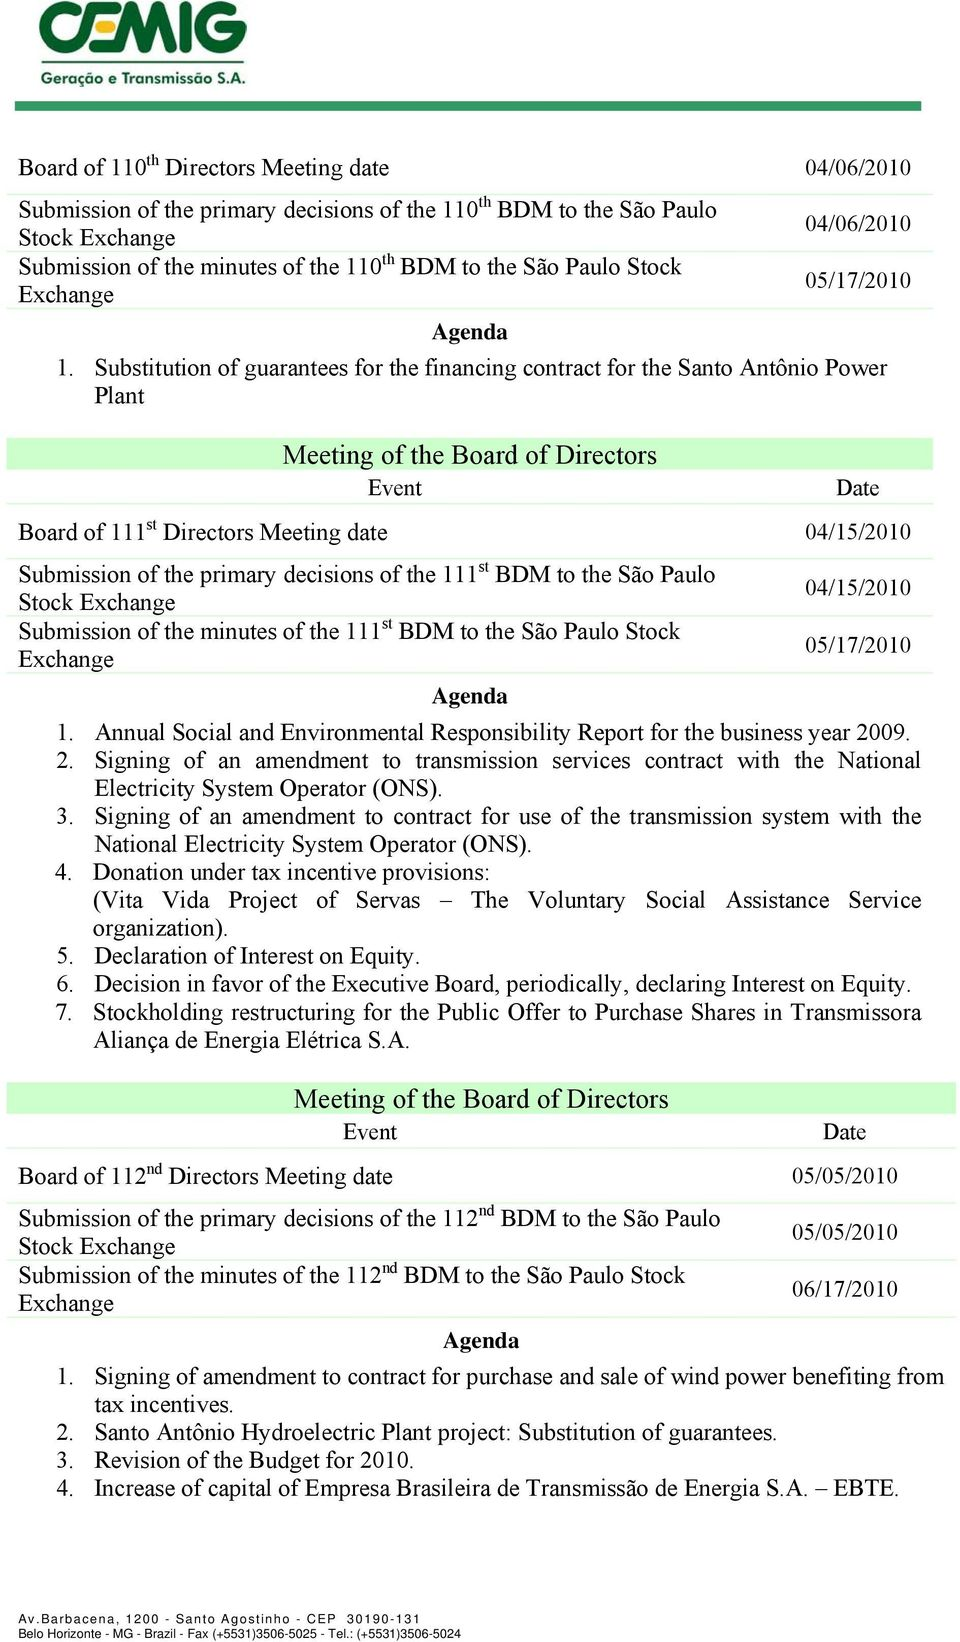 Substitution of guarantees for the financing contract for the Santo Antônio Power Plant Board of 111 st Directors Meeting date 04/15/2010 Submission of the primary decisions of the 111 st BDM to the